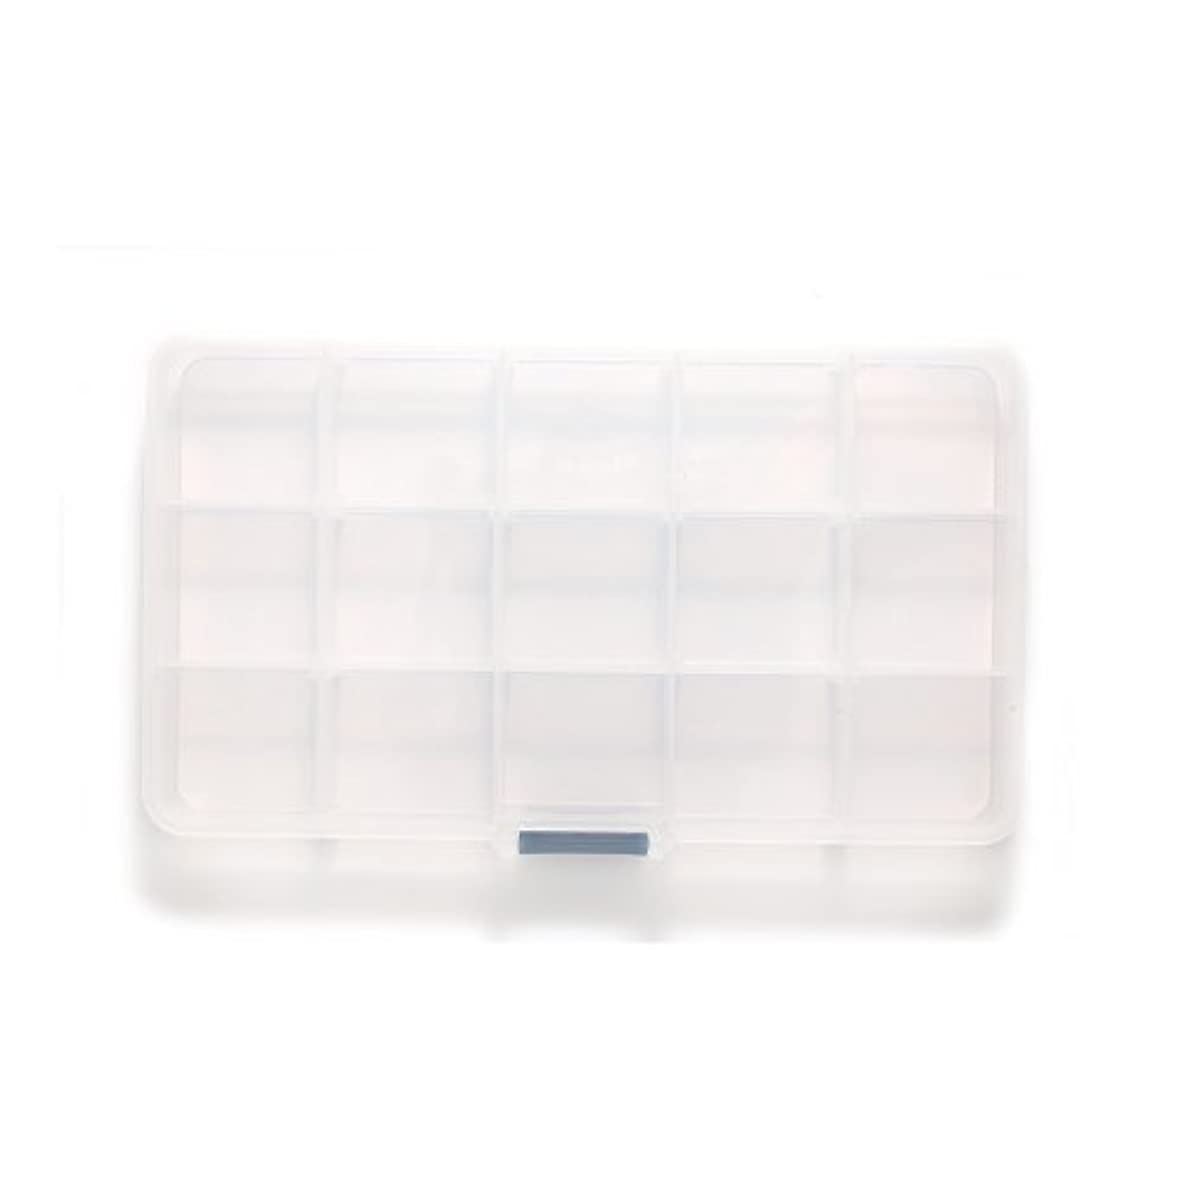 Shipwreck Beads Plastic Bead Storage Box with 15 Compartments, 4 by 7-Inch, Clear, 2-Pack